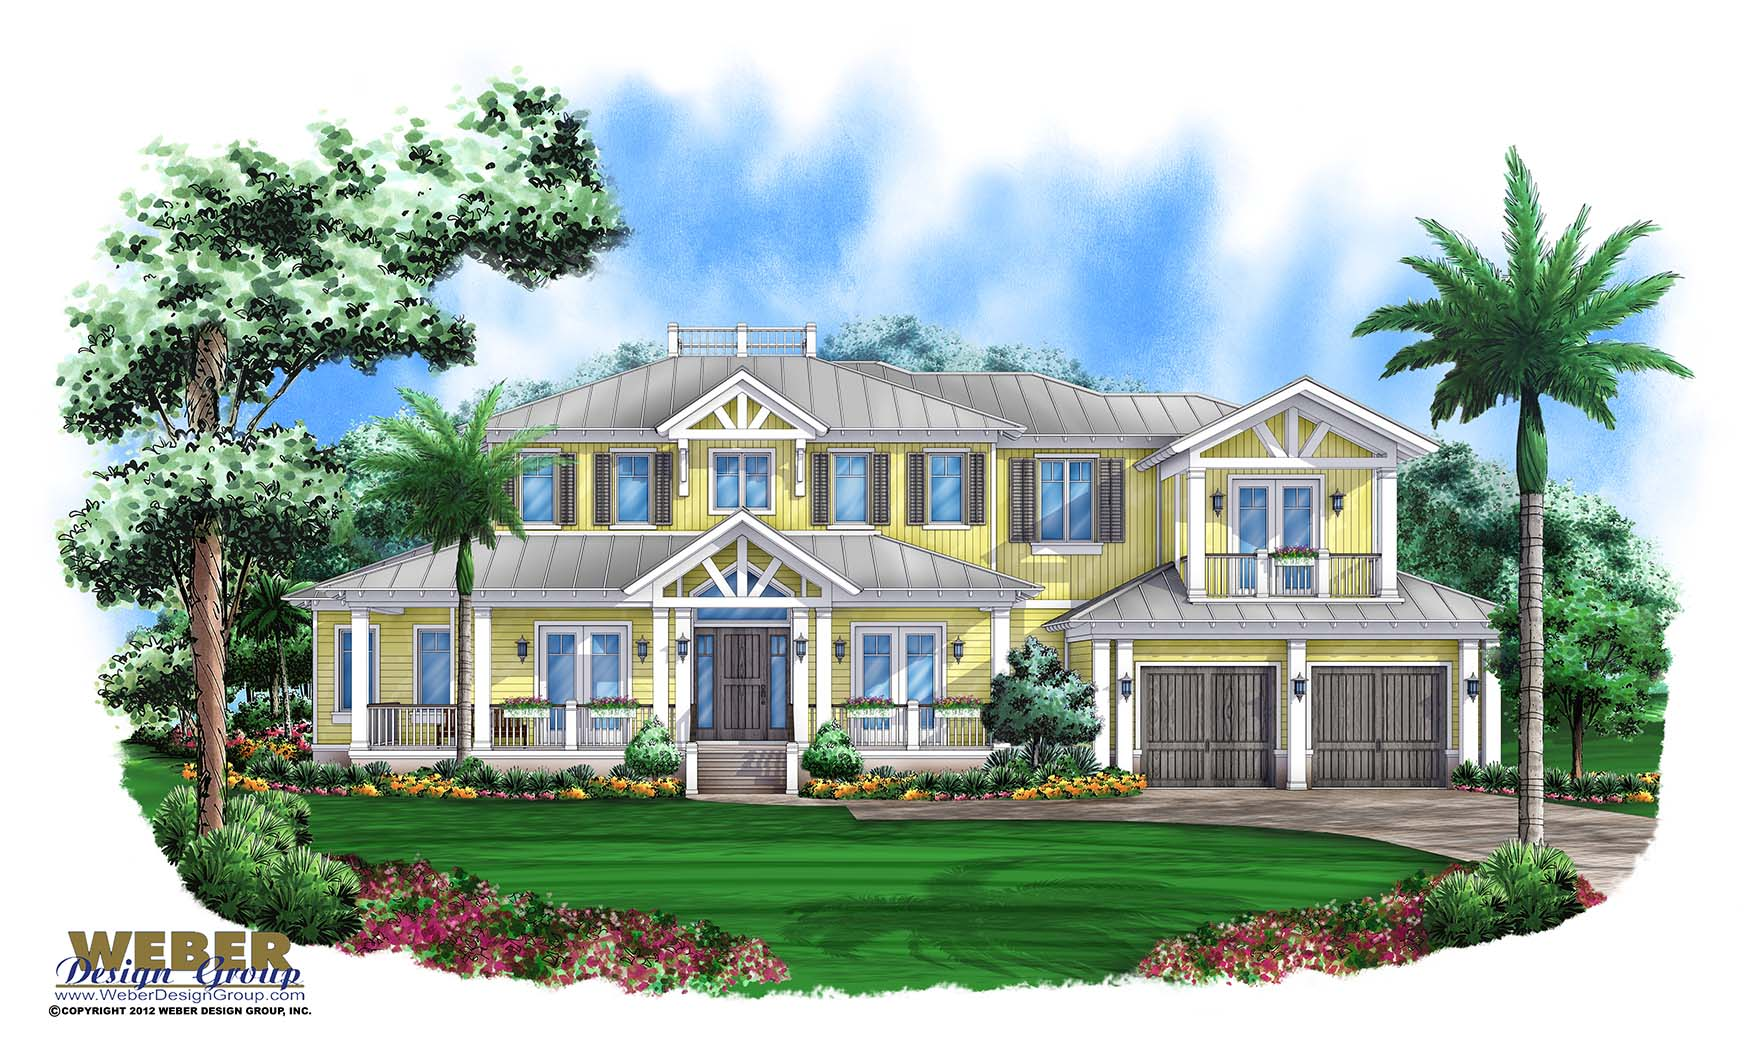 Coastal House Floor Plans Of Key West House Plans Key West Island Style Home Floor Plans